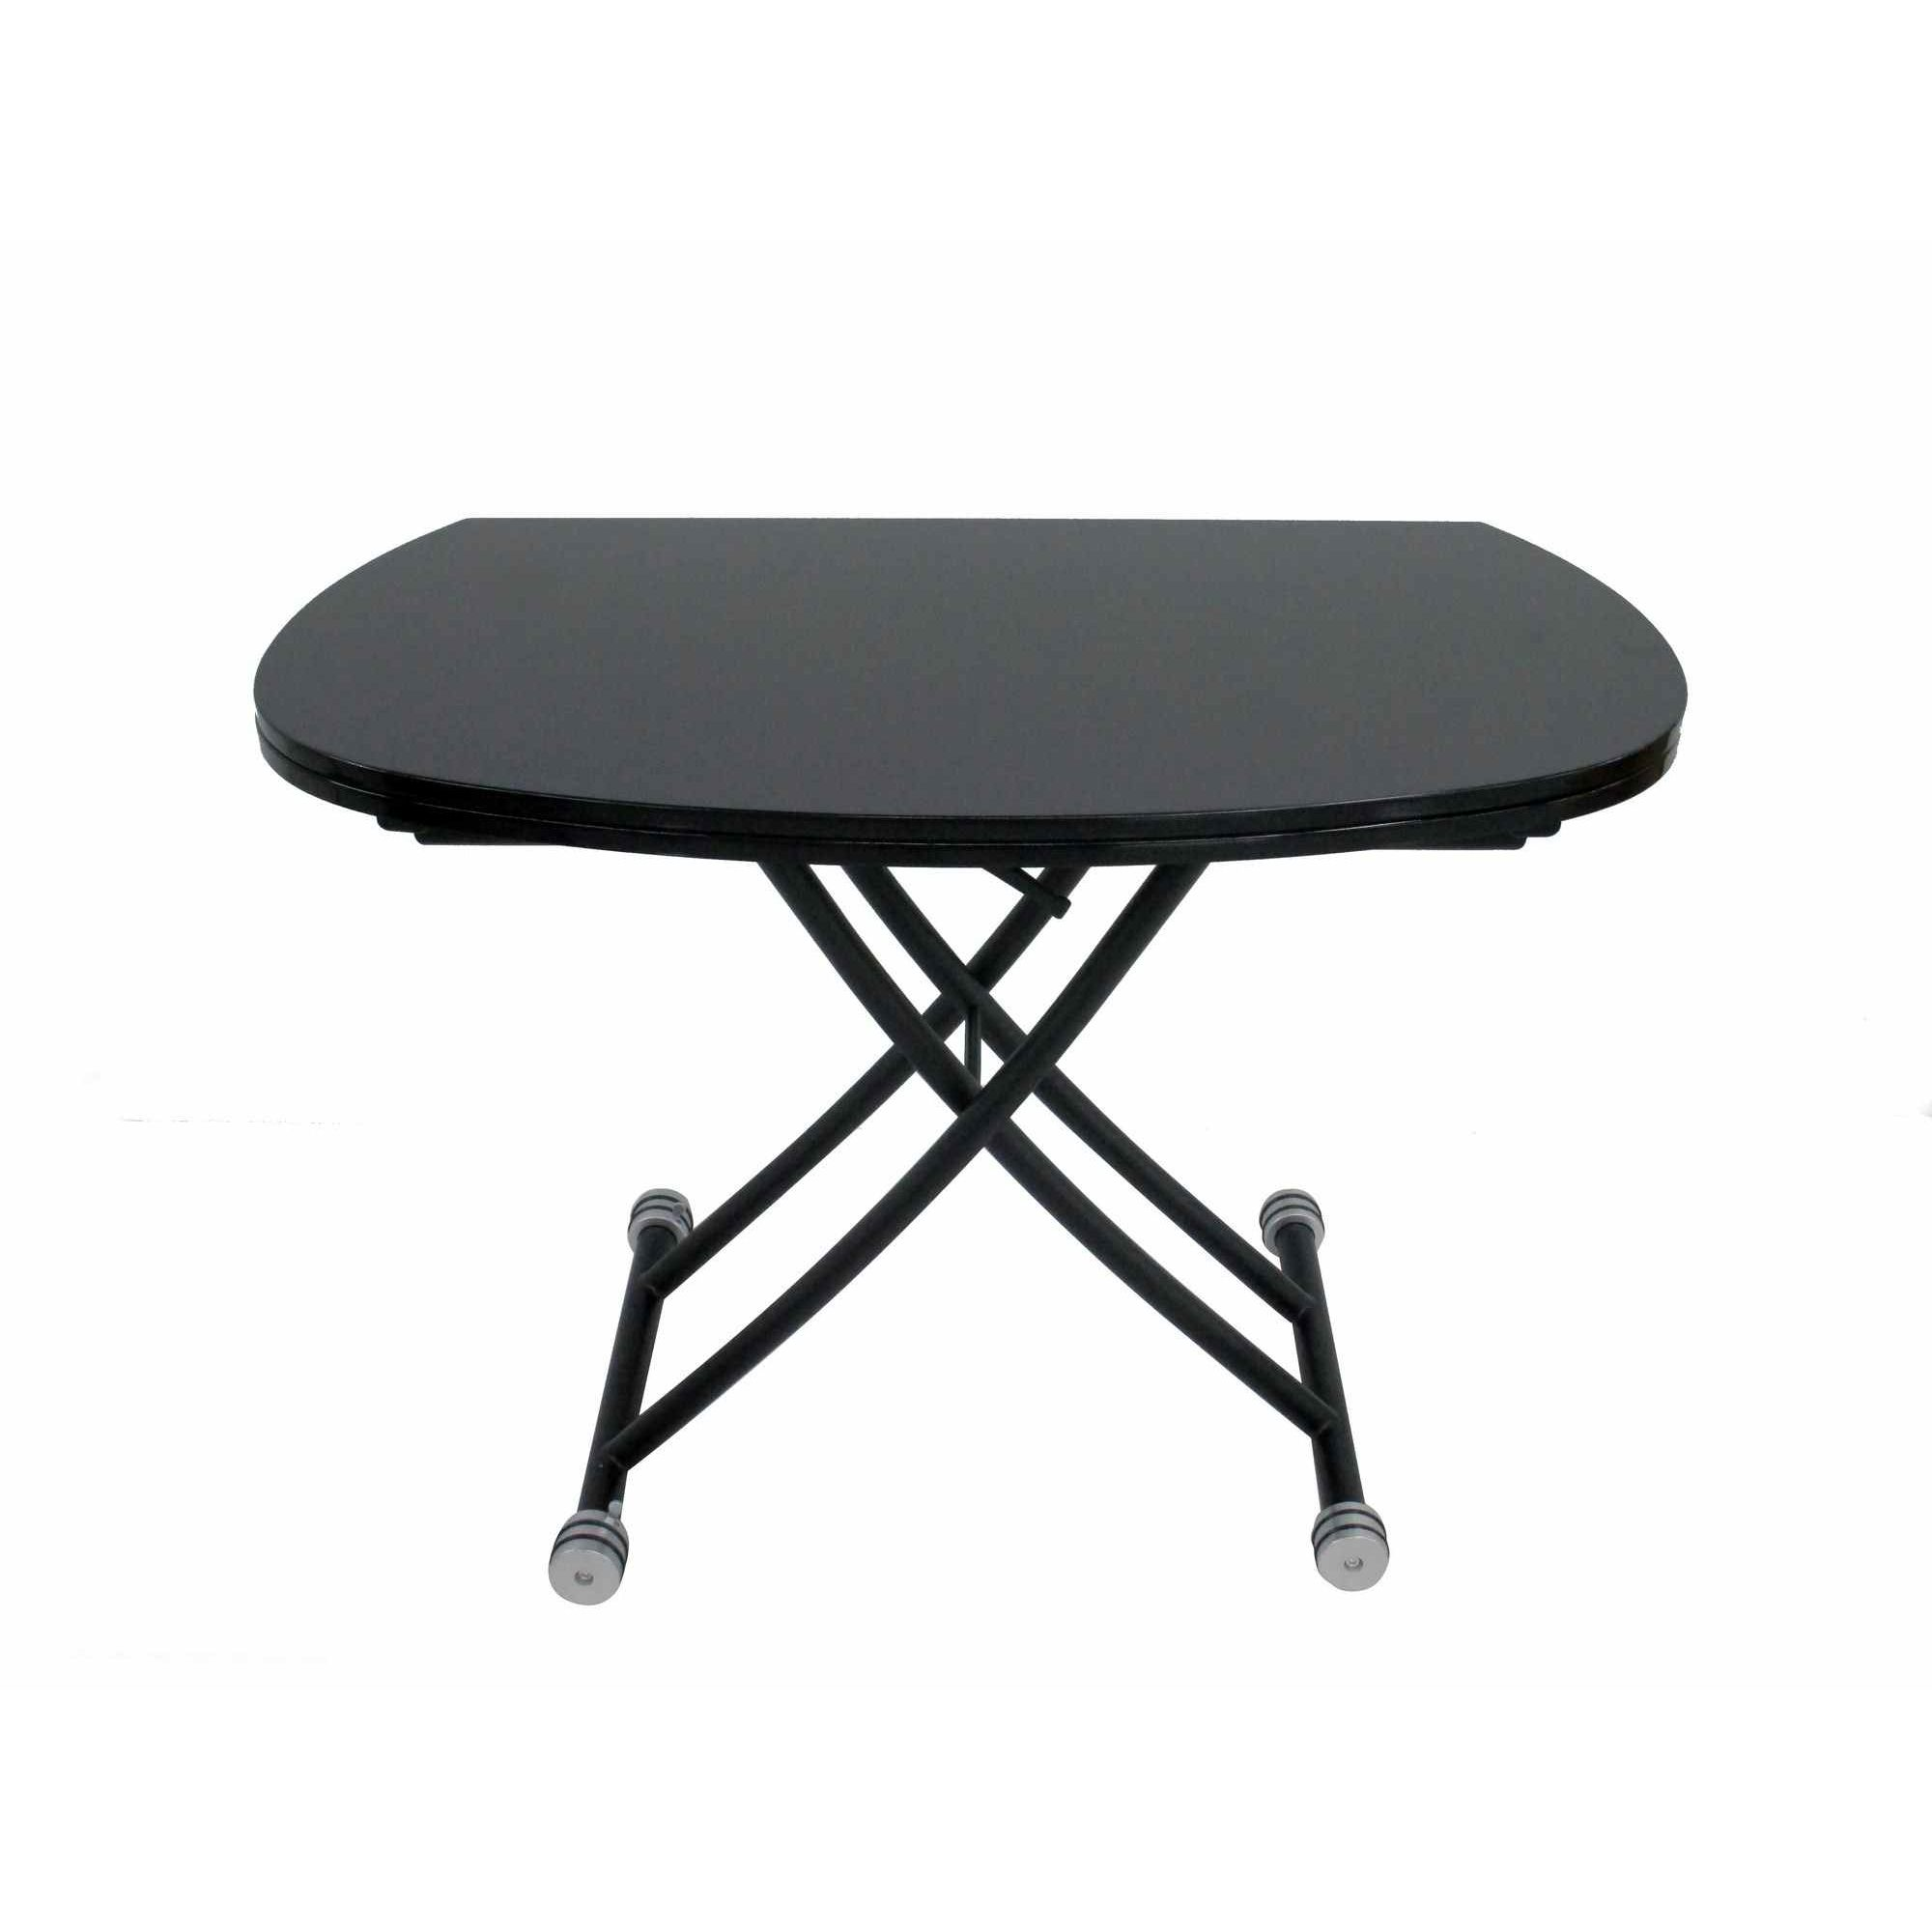 Deco in paris table basse relevable a rallonge laque noir caoza tab noir caoza - Table relevable rallonge ...